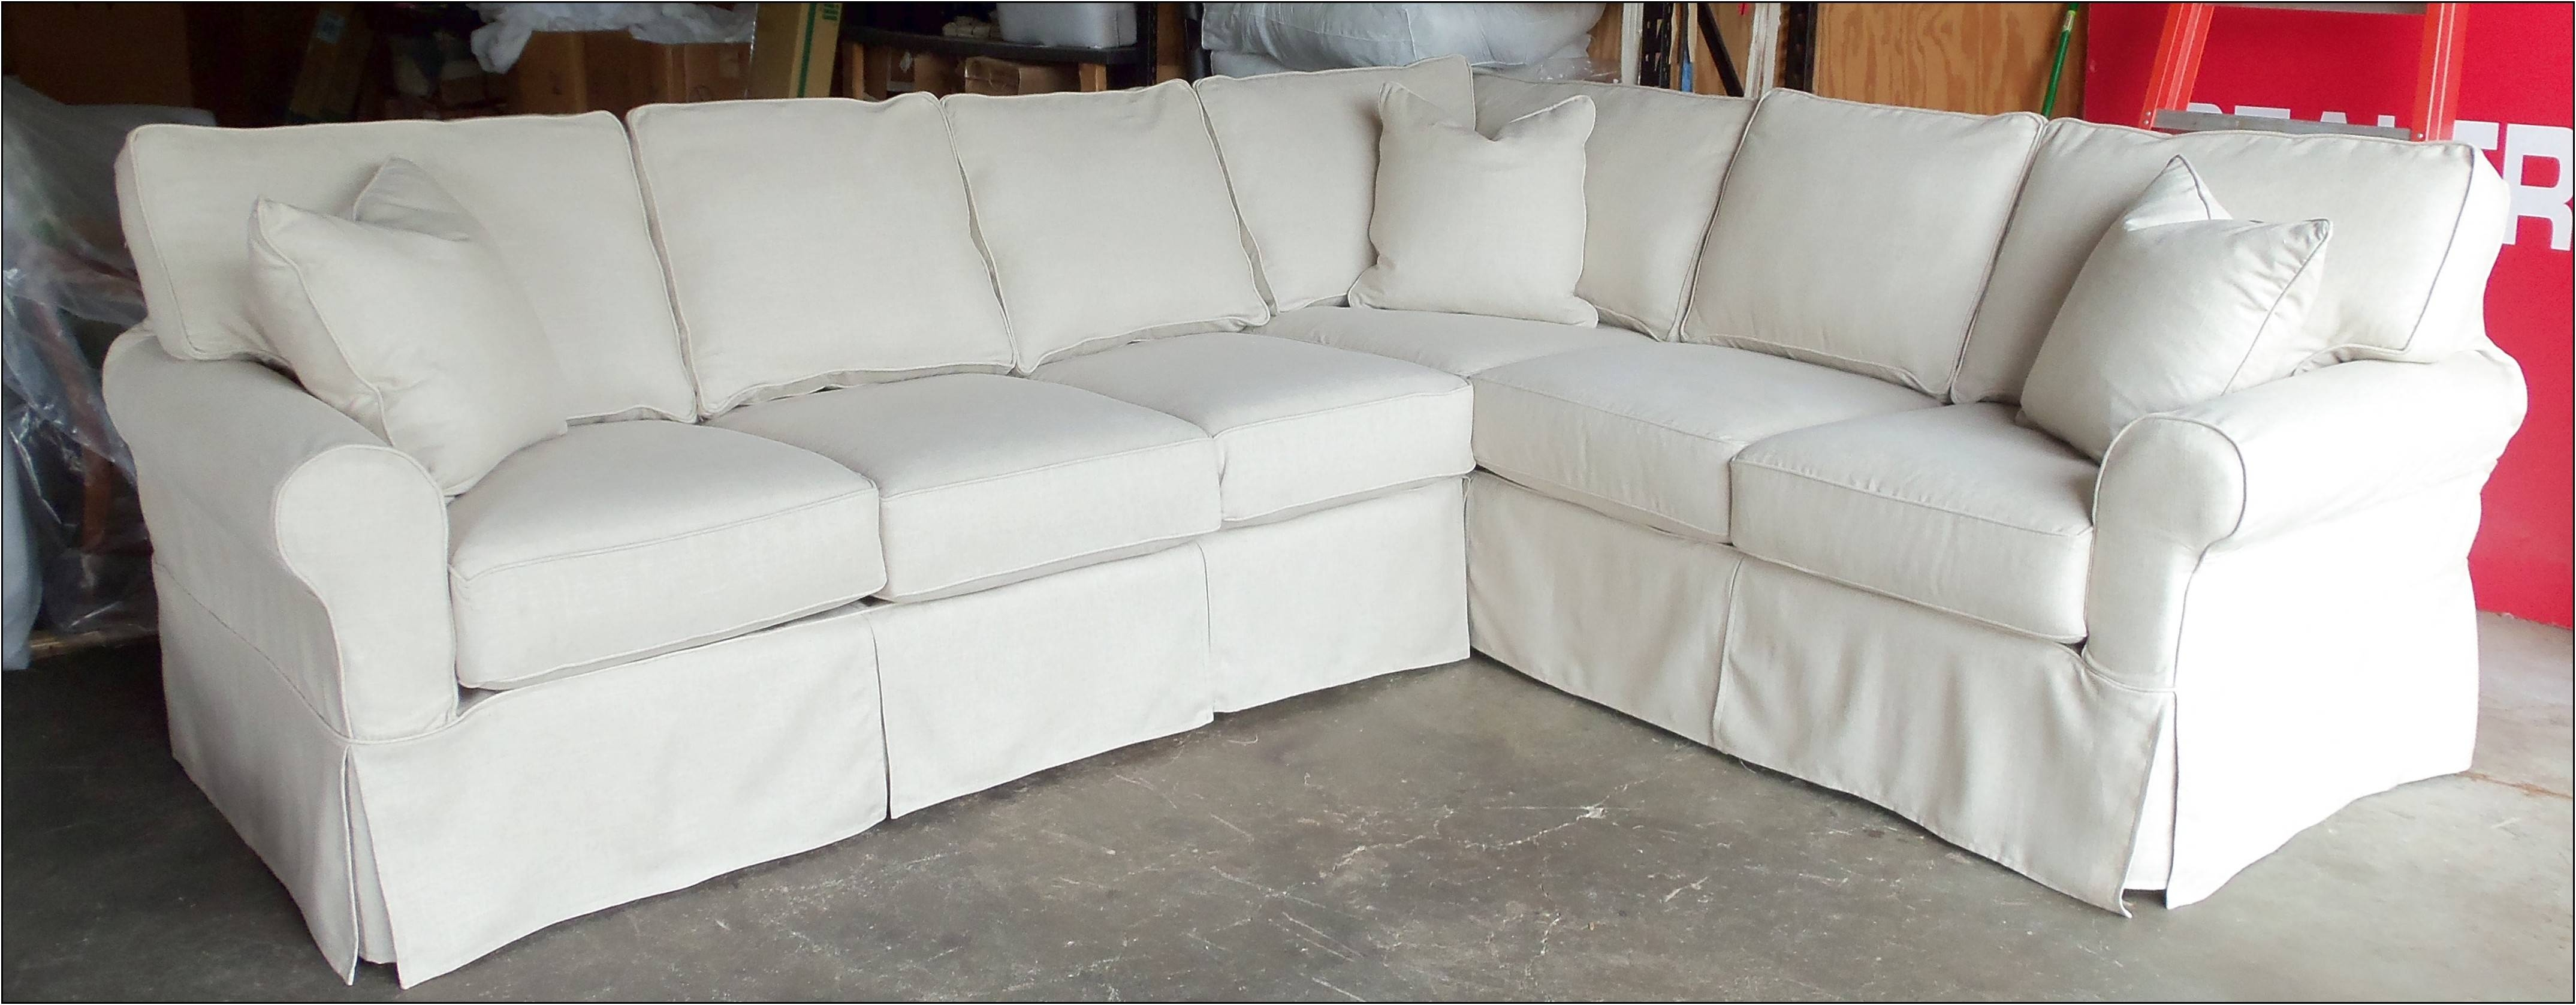 Jcpenney Reclining Sofas | Tehranmix Decoration In Jcpenney Sectional Sofas (View 8 of 15)